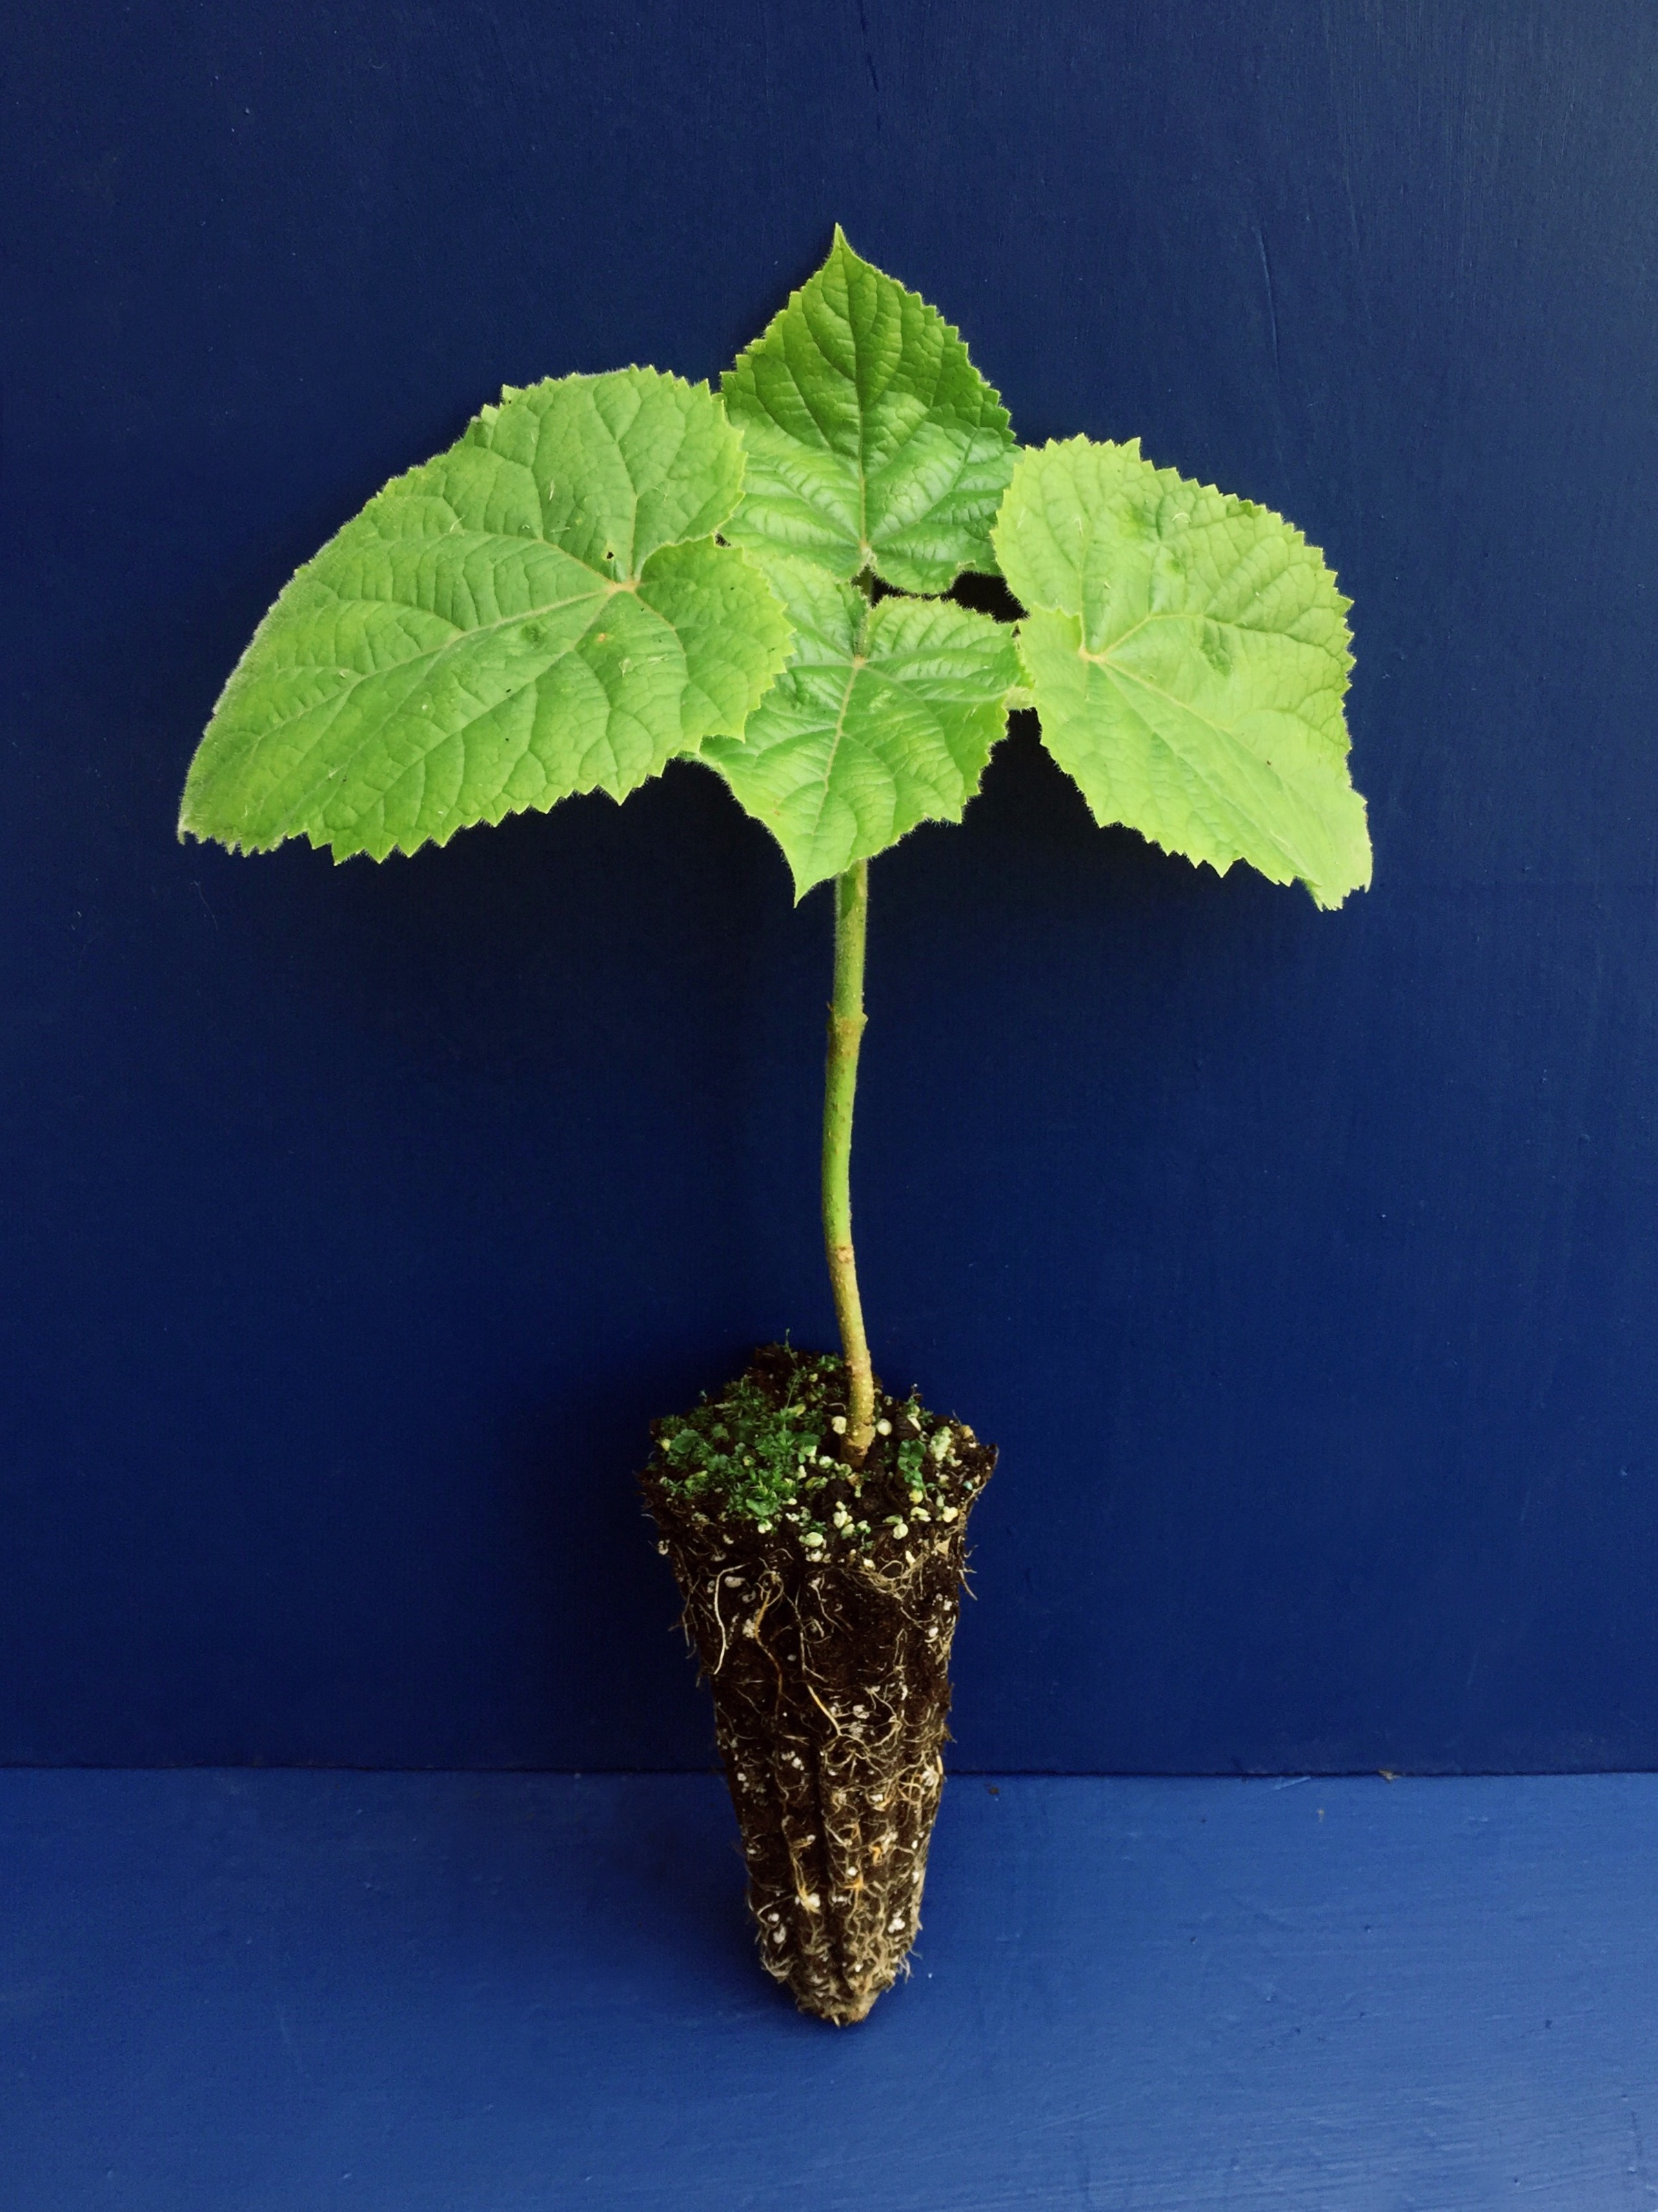 PAULOWNIA TOMENTOSA Paulonia Empress Tree Princess Tree -<b>offerta 400 alveoli forestali </b> -altezza 5-10 cm